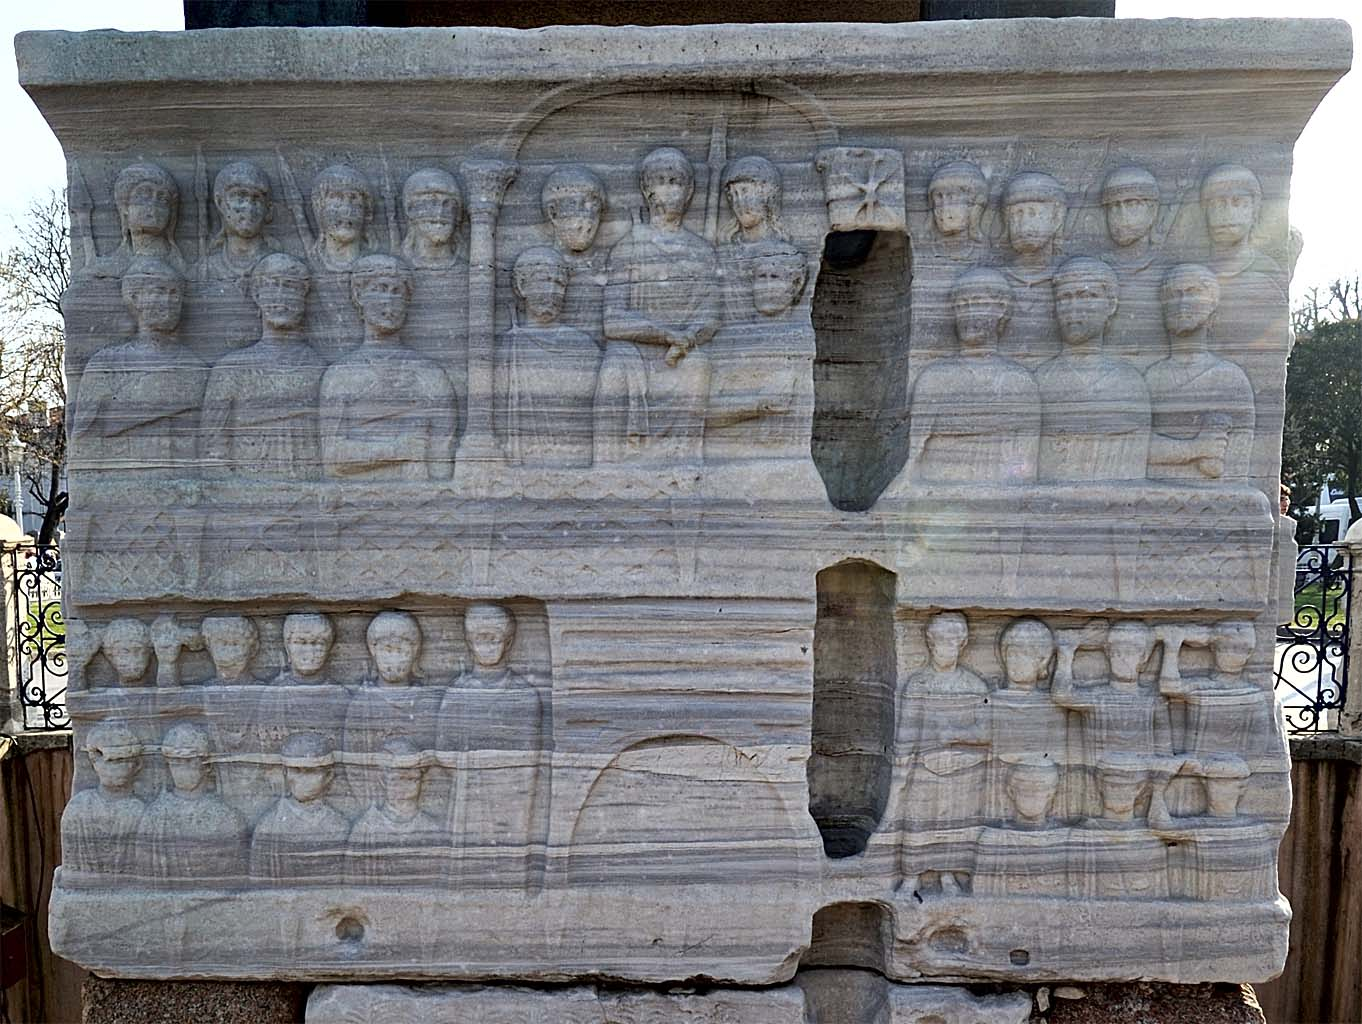 The emperor and his court. Pedestal of the Obelisk of Theodosius. North side. Hippodrome of Constantinople. 390 CE. Istanbul